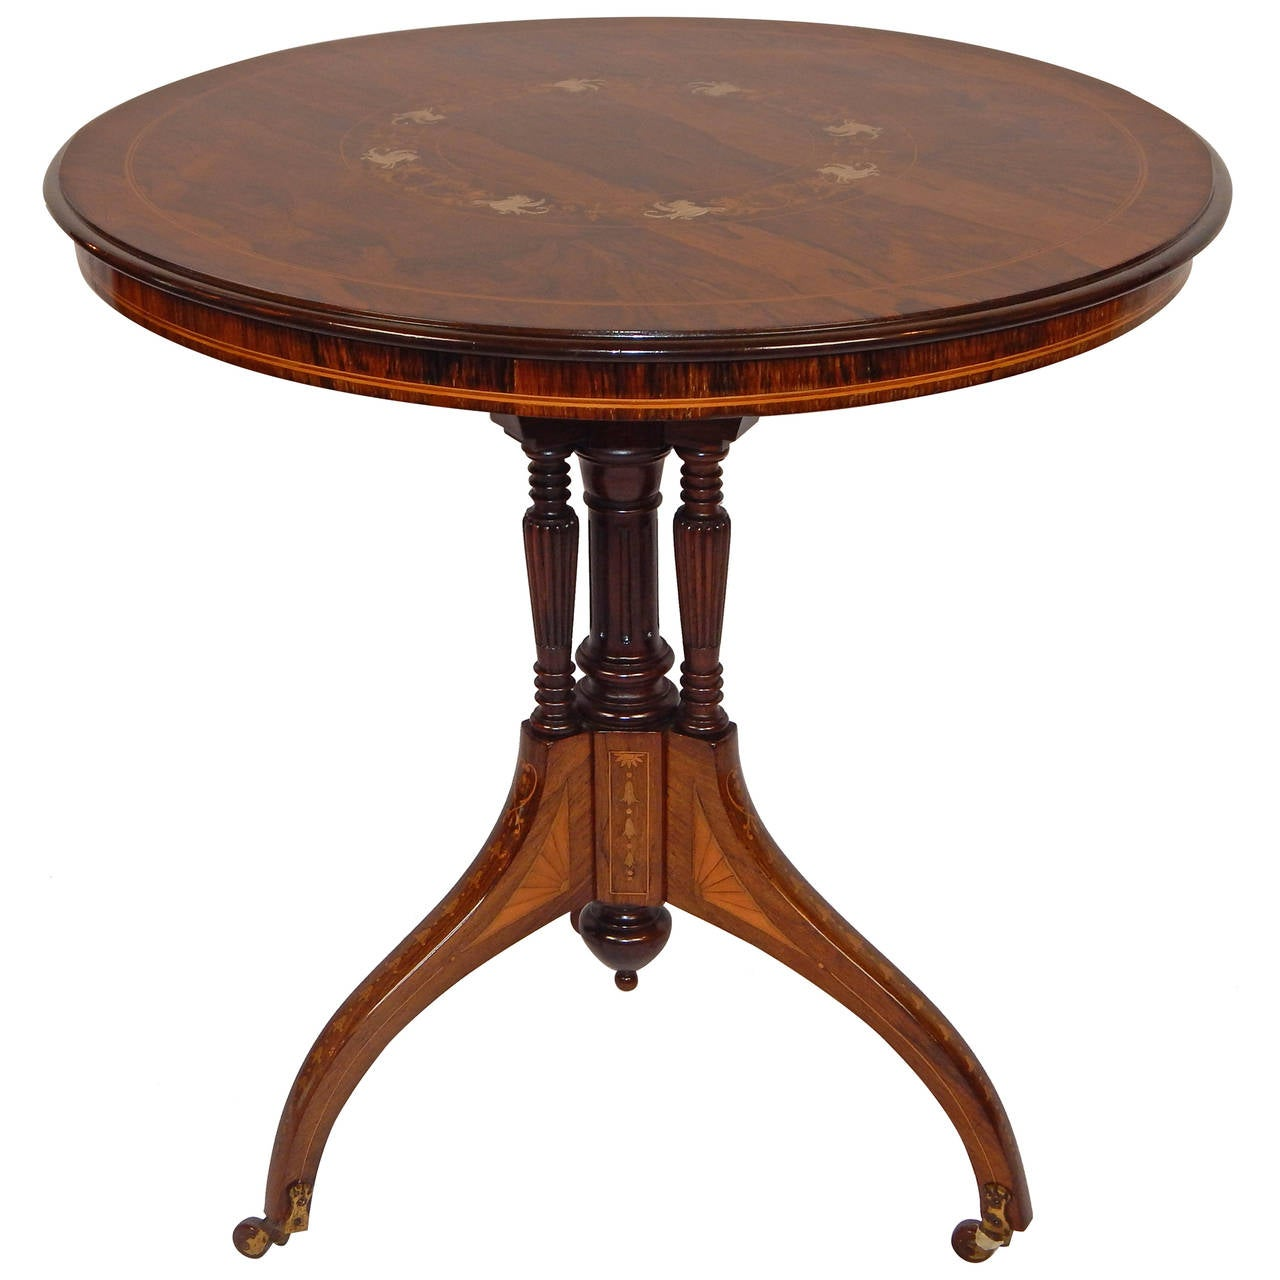 English edwardian inlaid rosewood side table at 1stdibs for England table